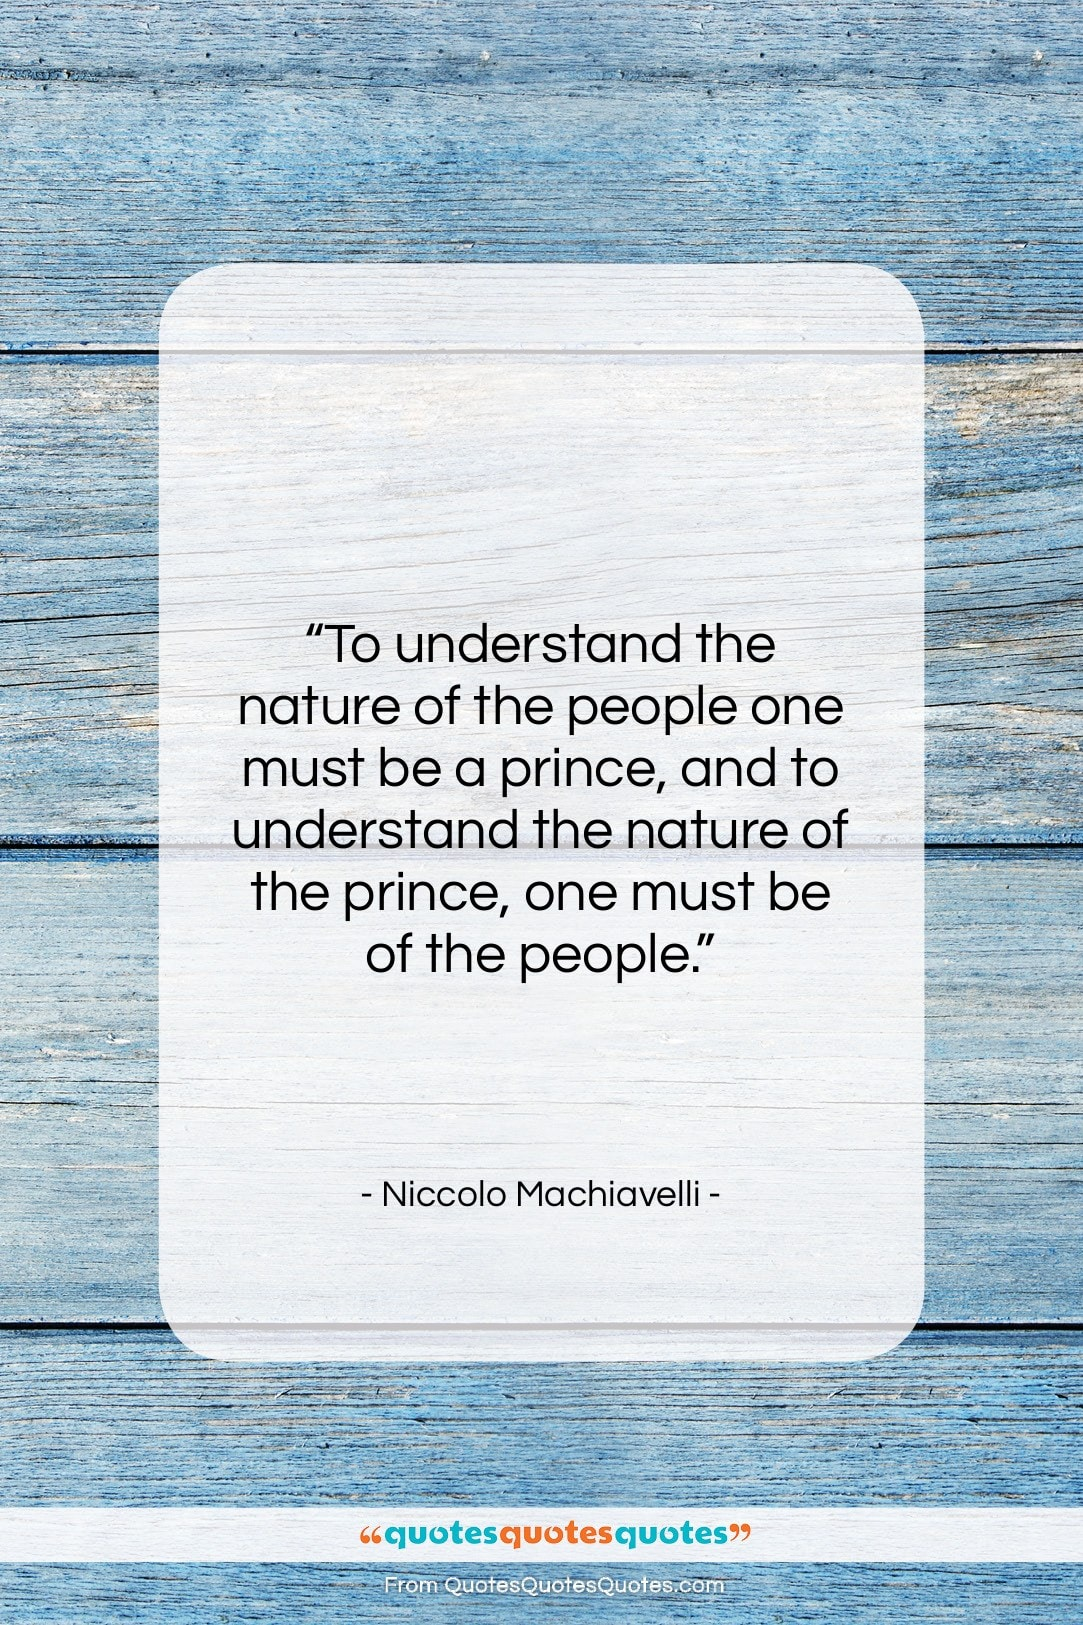 """Niccolo Machiavelli quote: """"To understand the nature of the people…""""- at QuotesQuotesQuotes.com"""